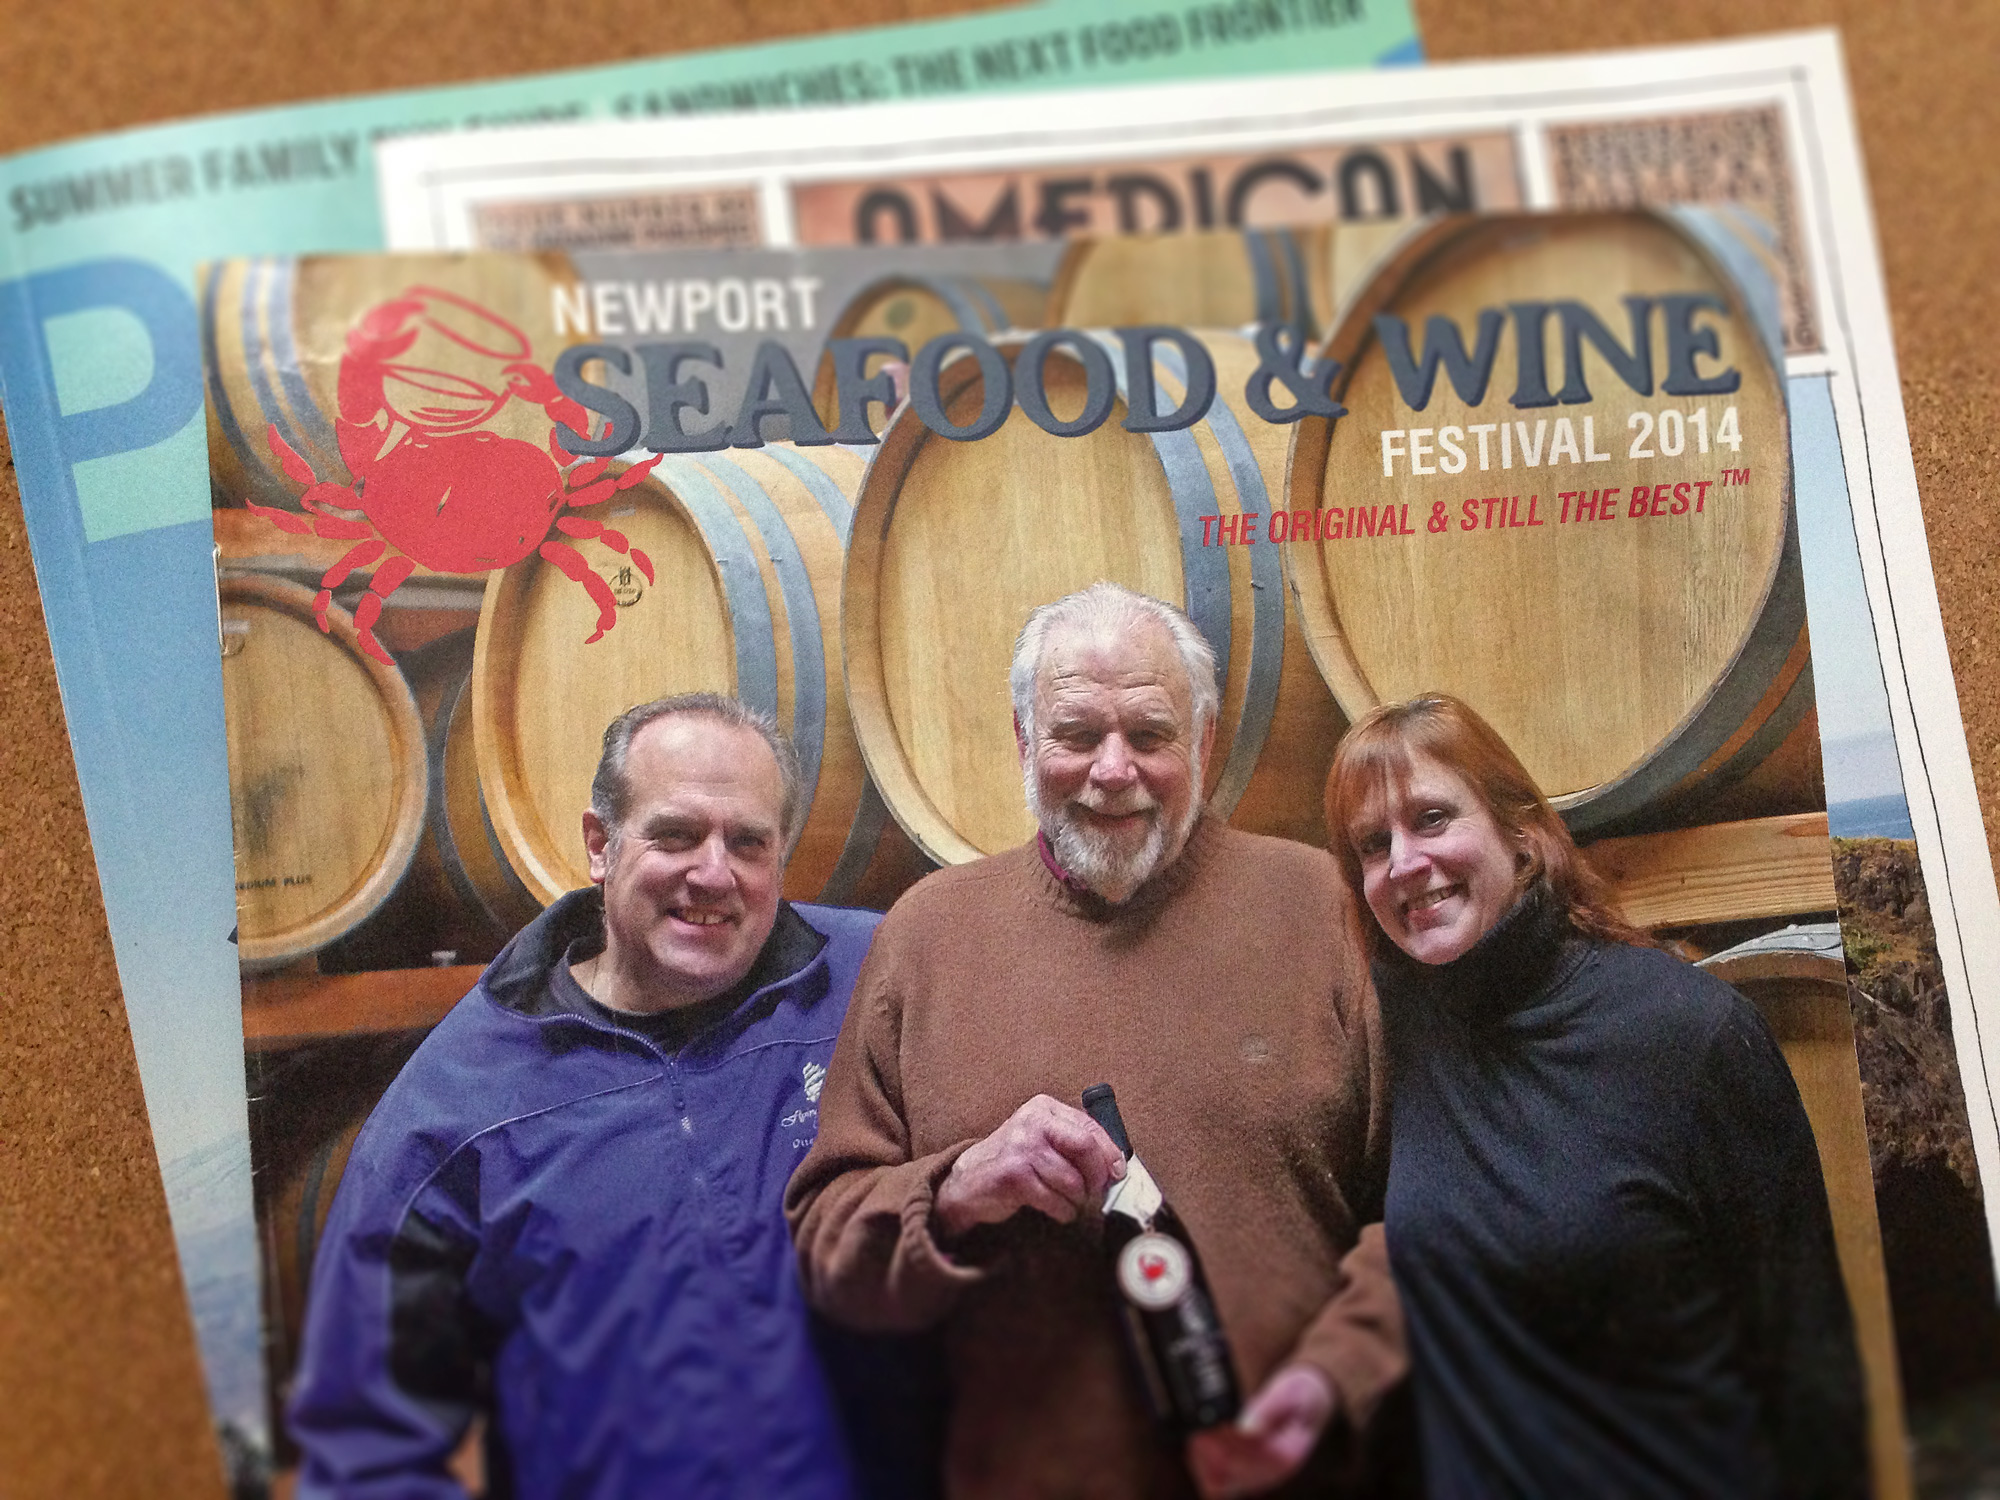 best of show newport seafood wine program cover